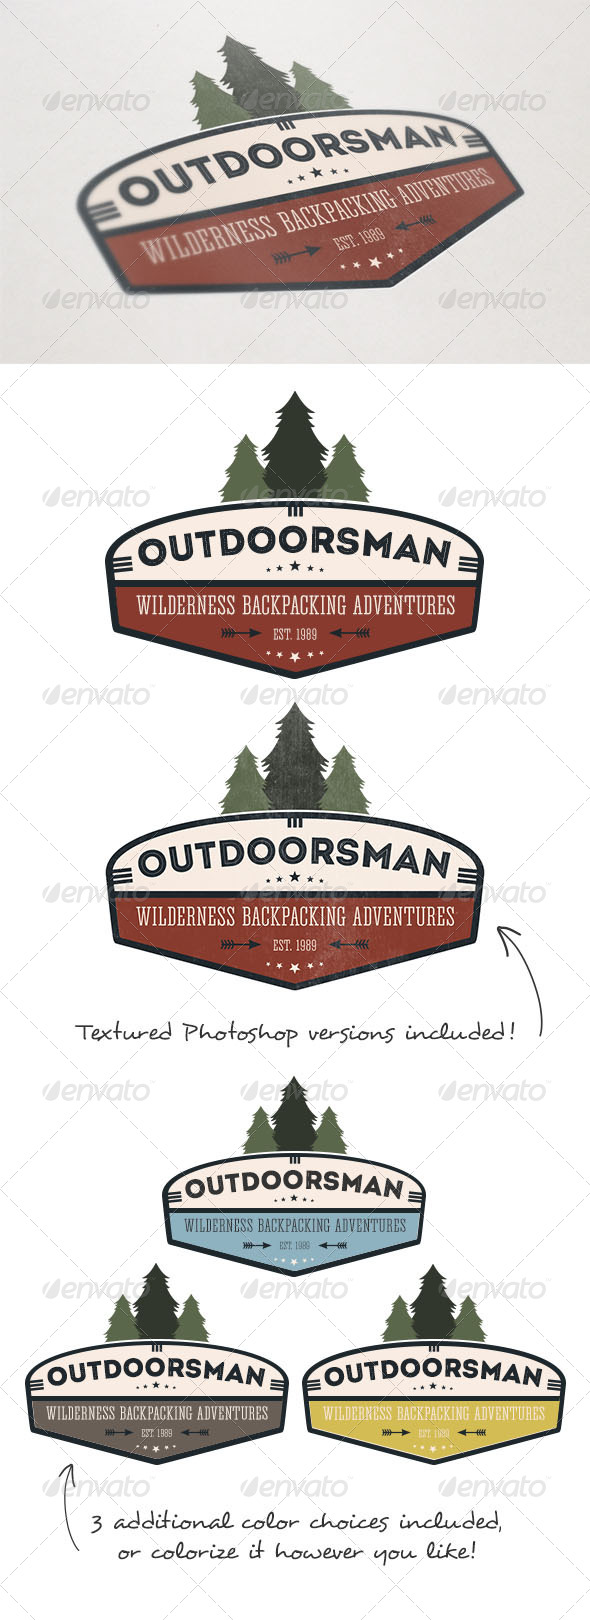 Outdoorsman Backpacking Logo